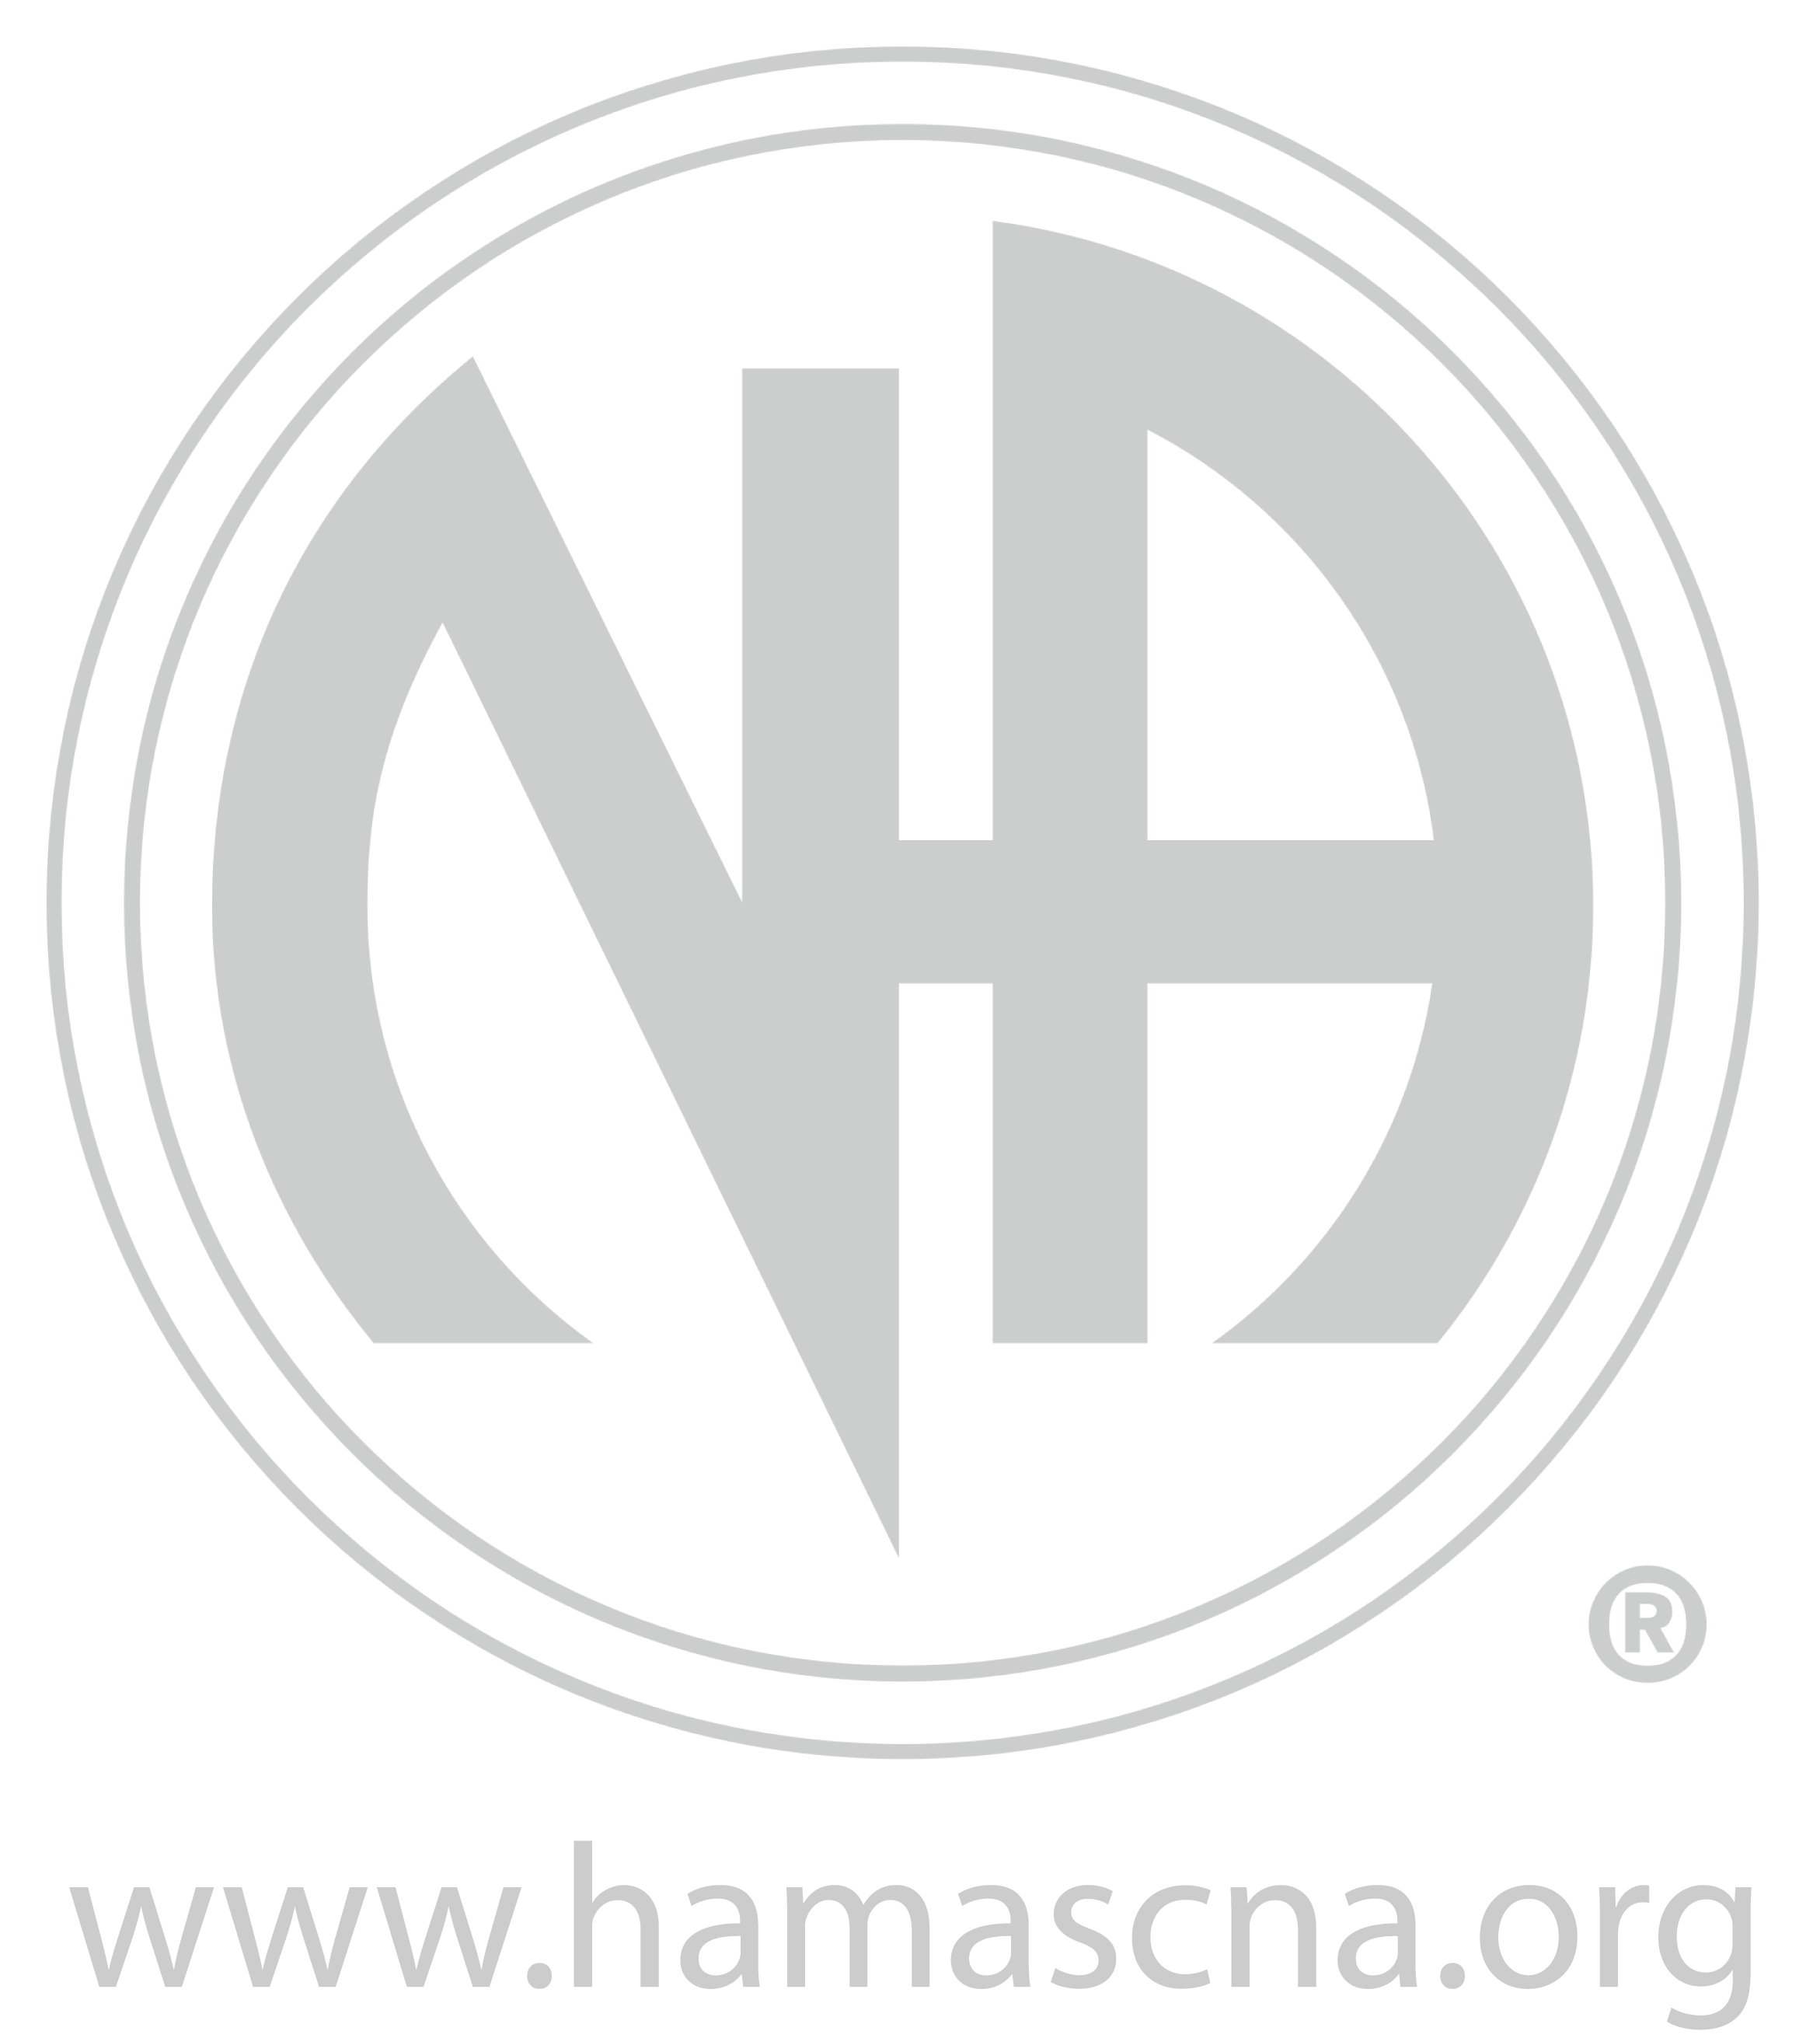 Narcotics anonymous symbol png. Hamascna logos nabackground